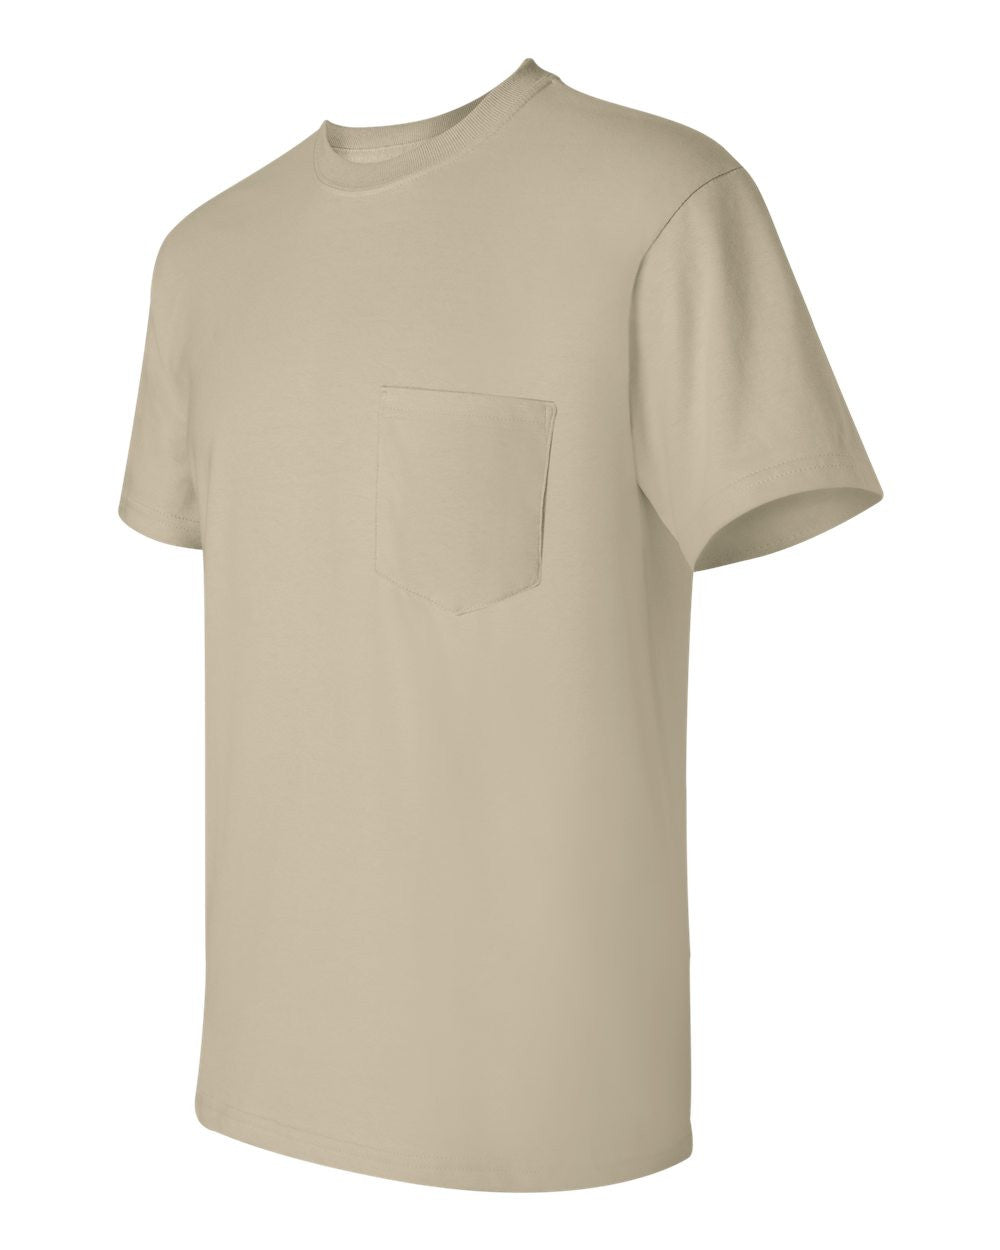 4 pack : Gildan Pocket T-shirts